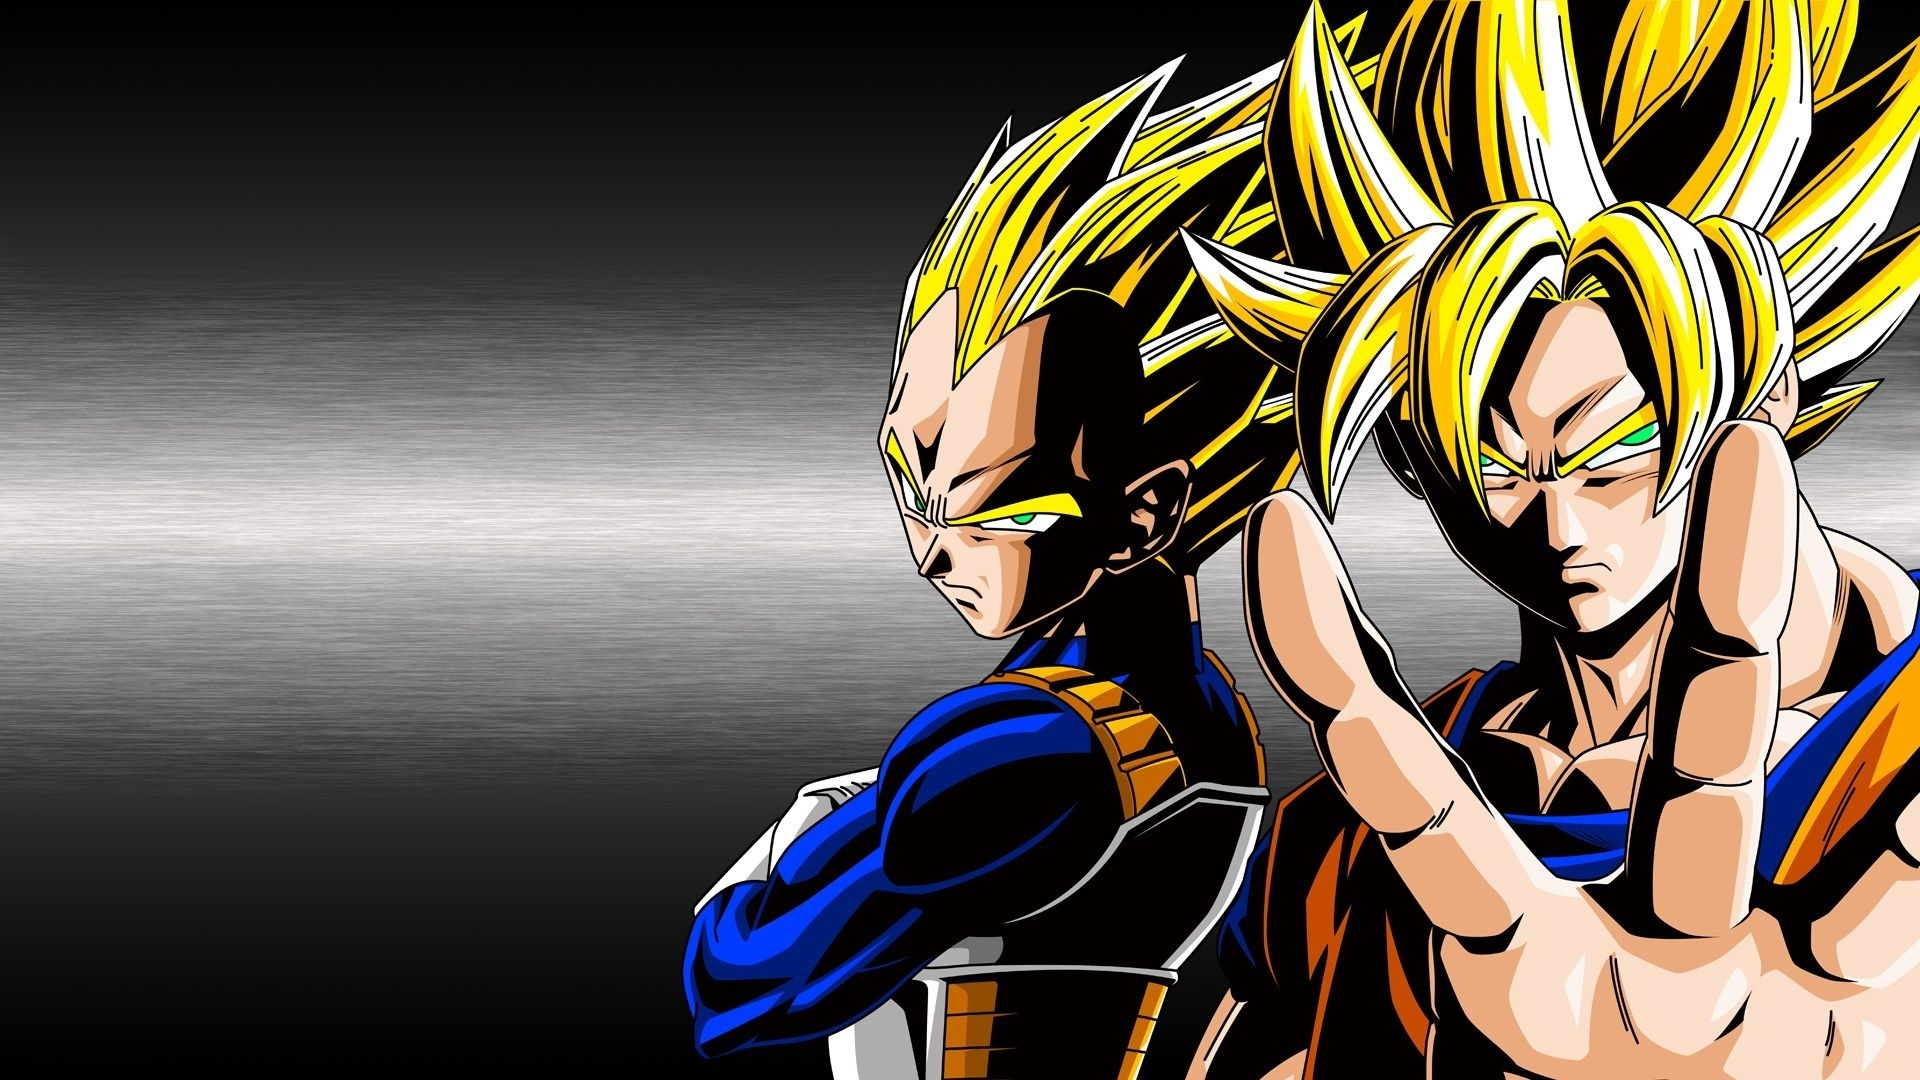 dragon ball z vegeta super saiyan wallpaper hd | ololoshenka | pinterest